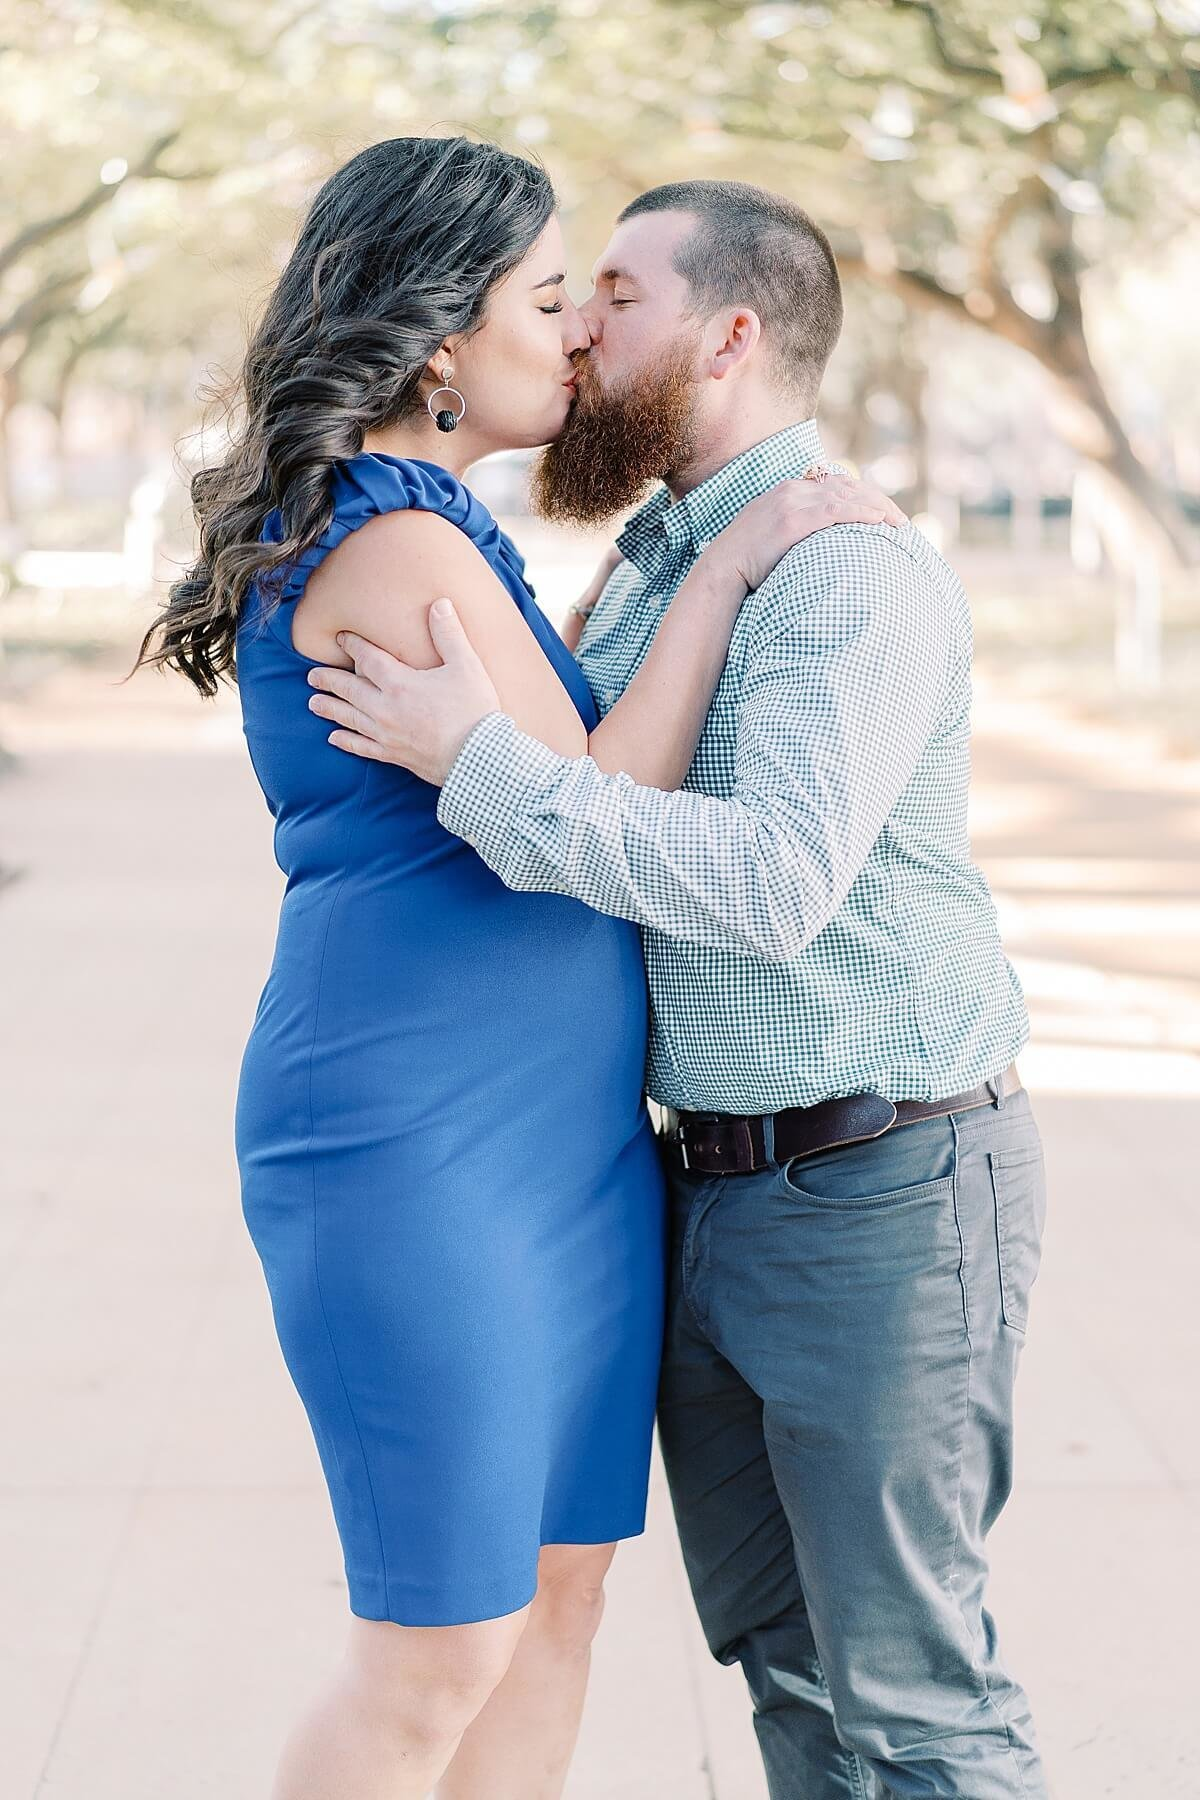 Discovery-Green-Engagement-Photos-Alicia-Yarrish-Photography_0012